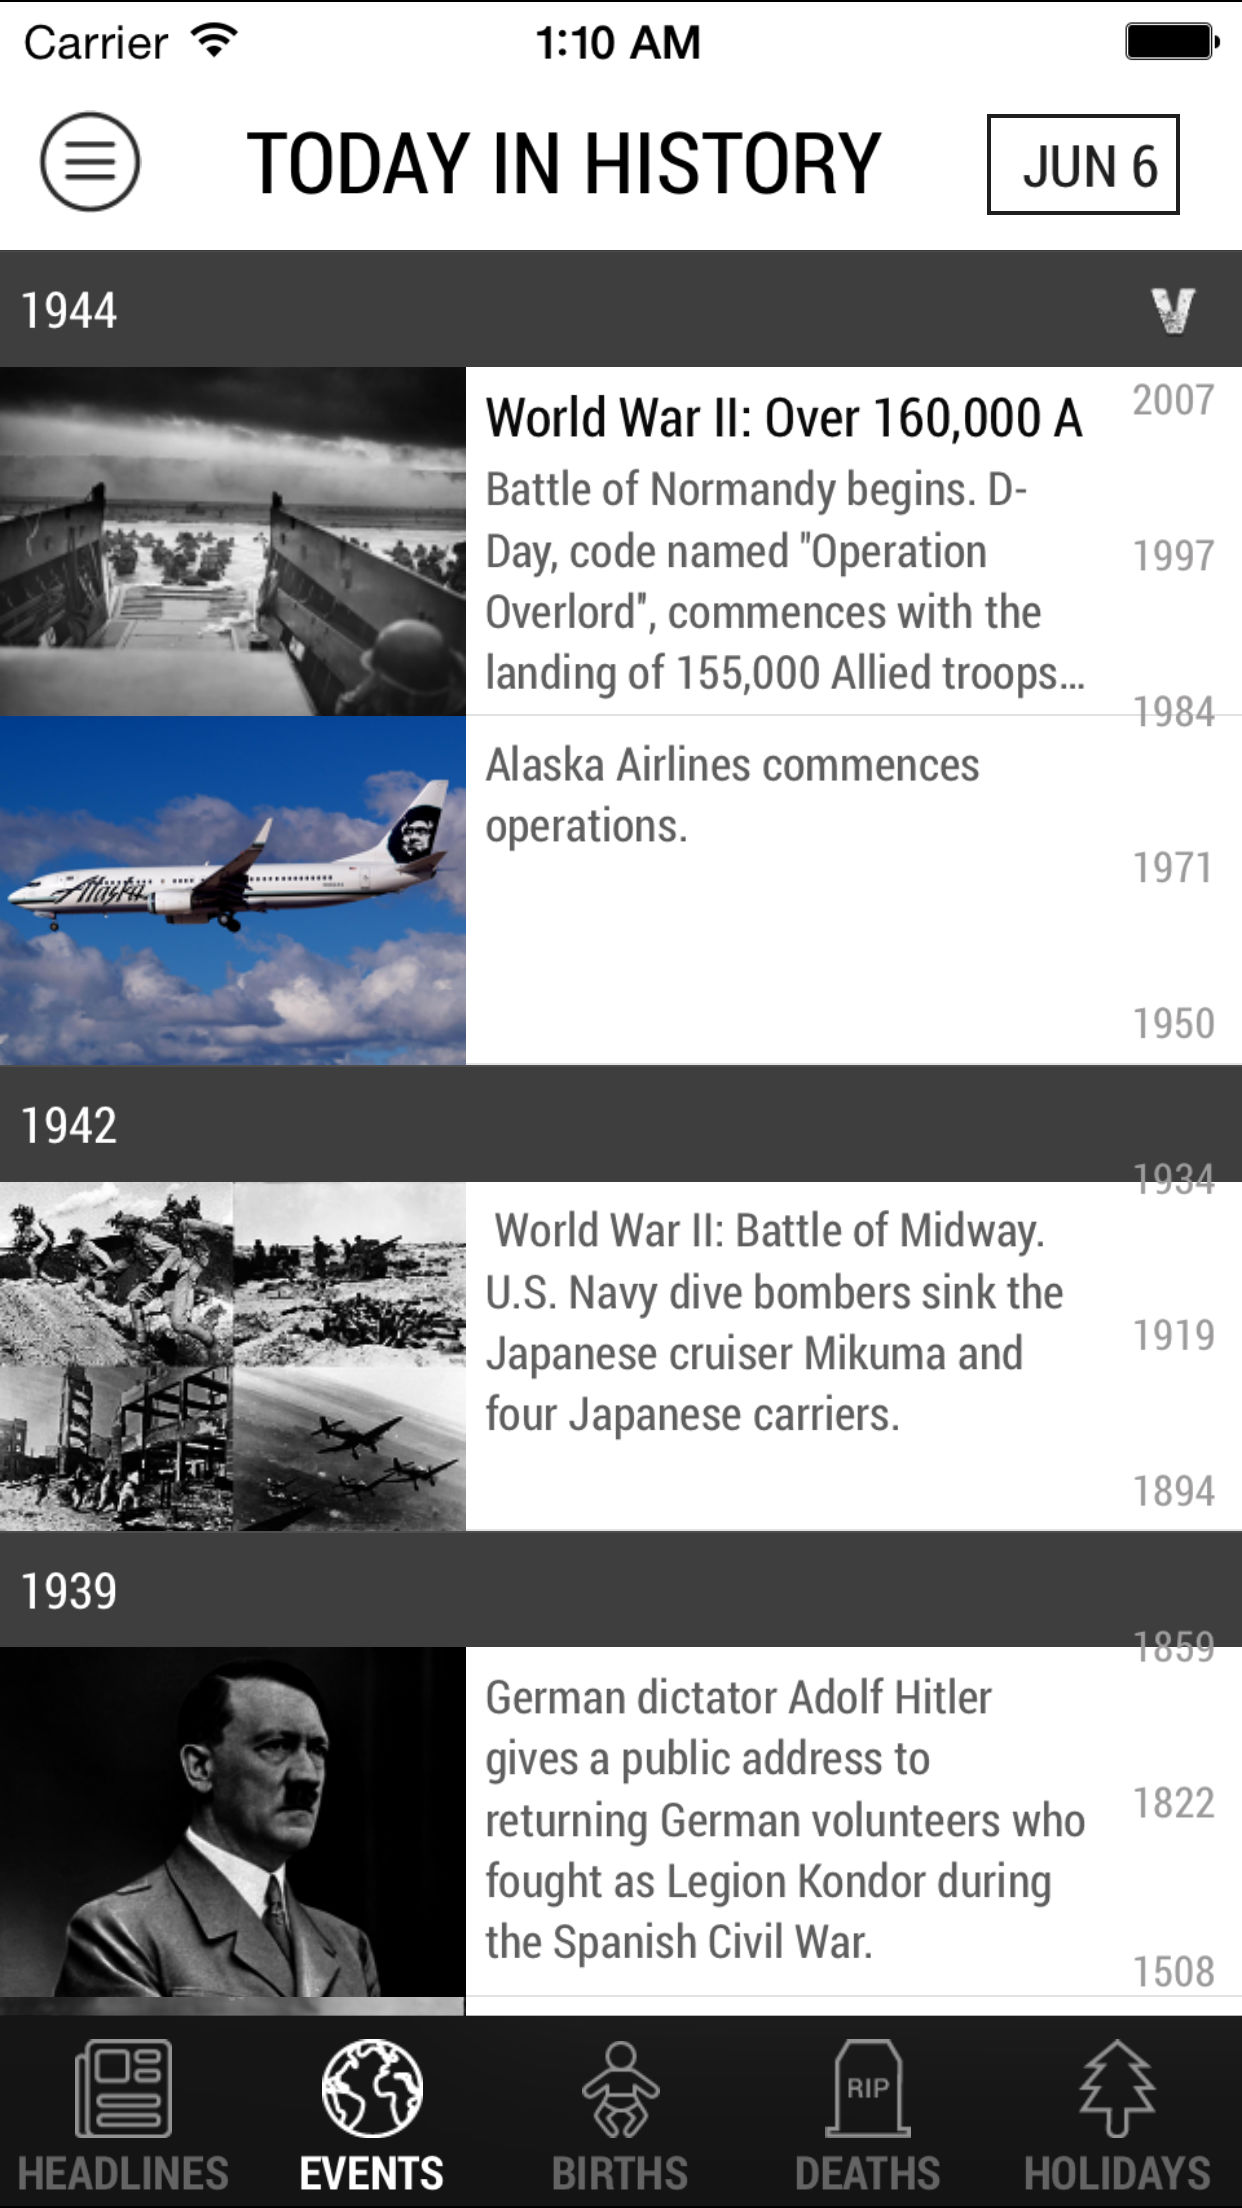 Today in History App Adds Support for Apple Watch and Widgets Image